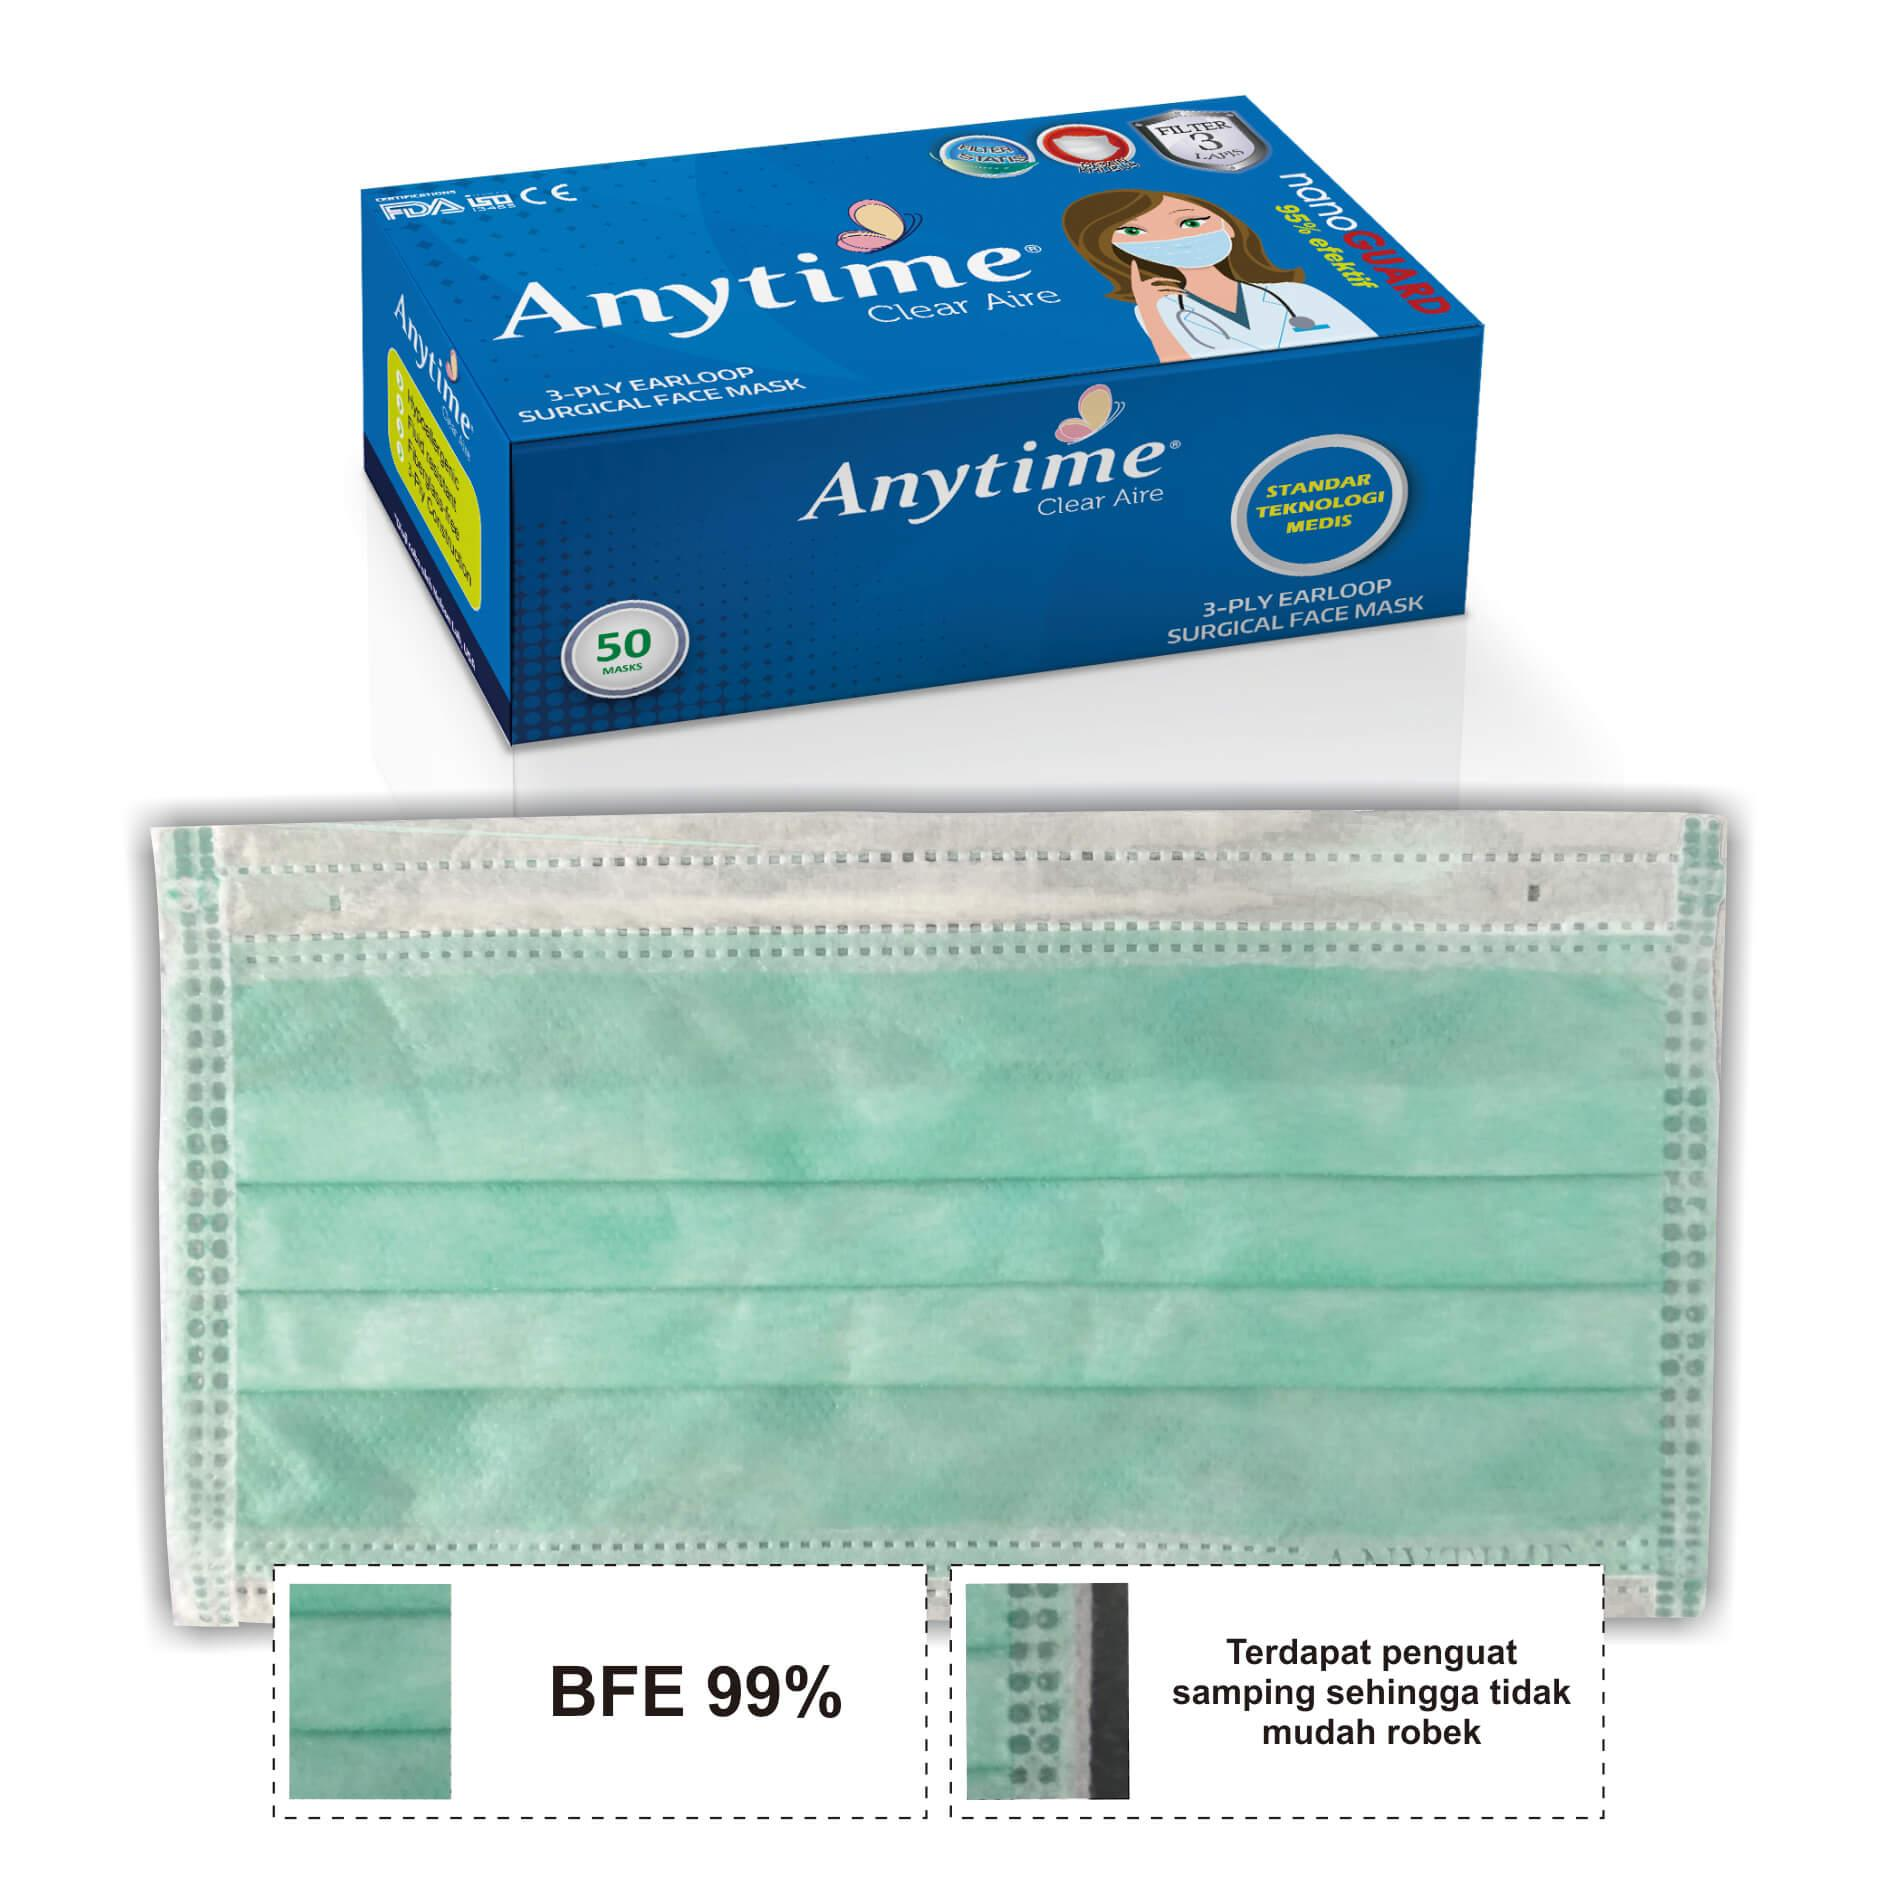 ANYTIME 3-Ply Earloop Surgical Face Mask 50 Pcs - Masker - Compare With Sensi